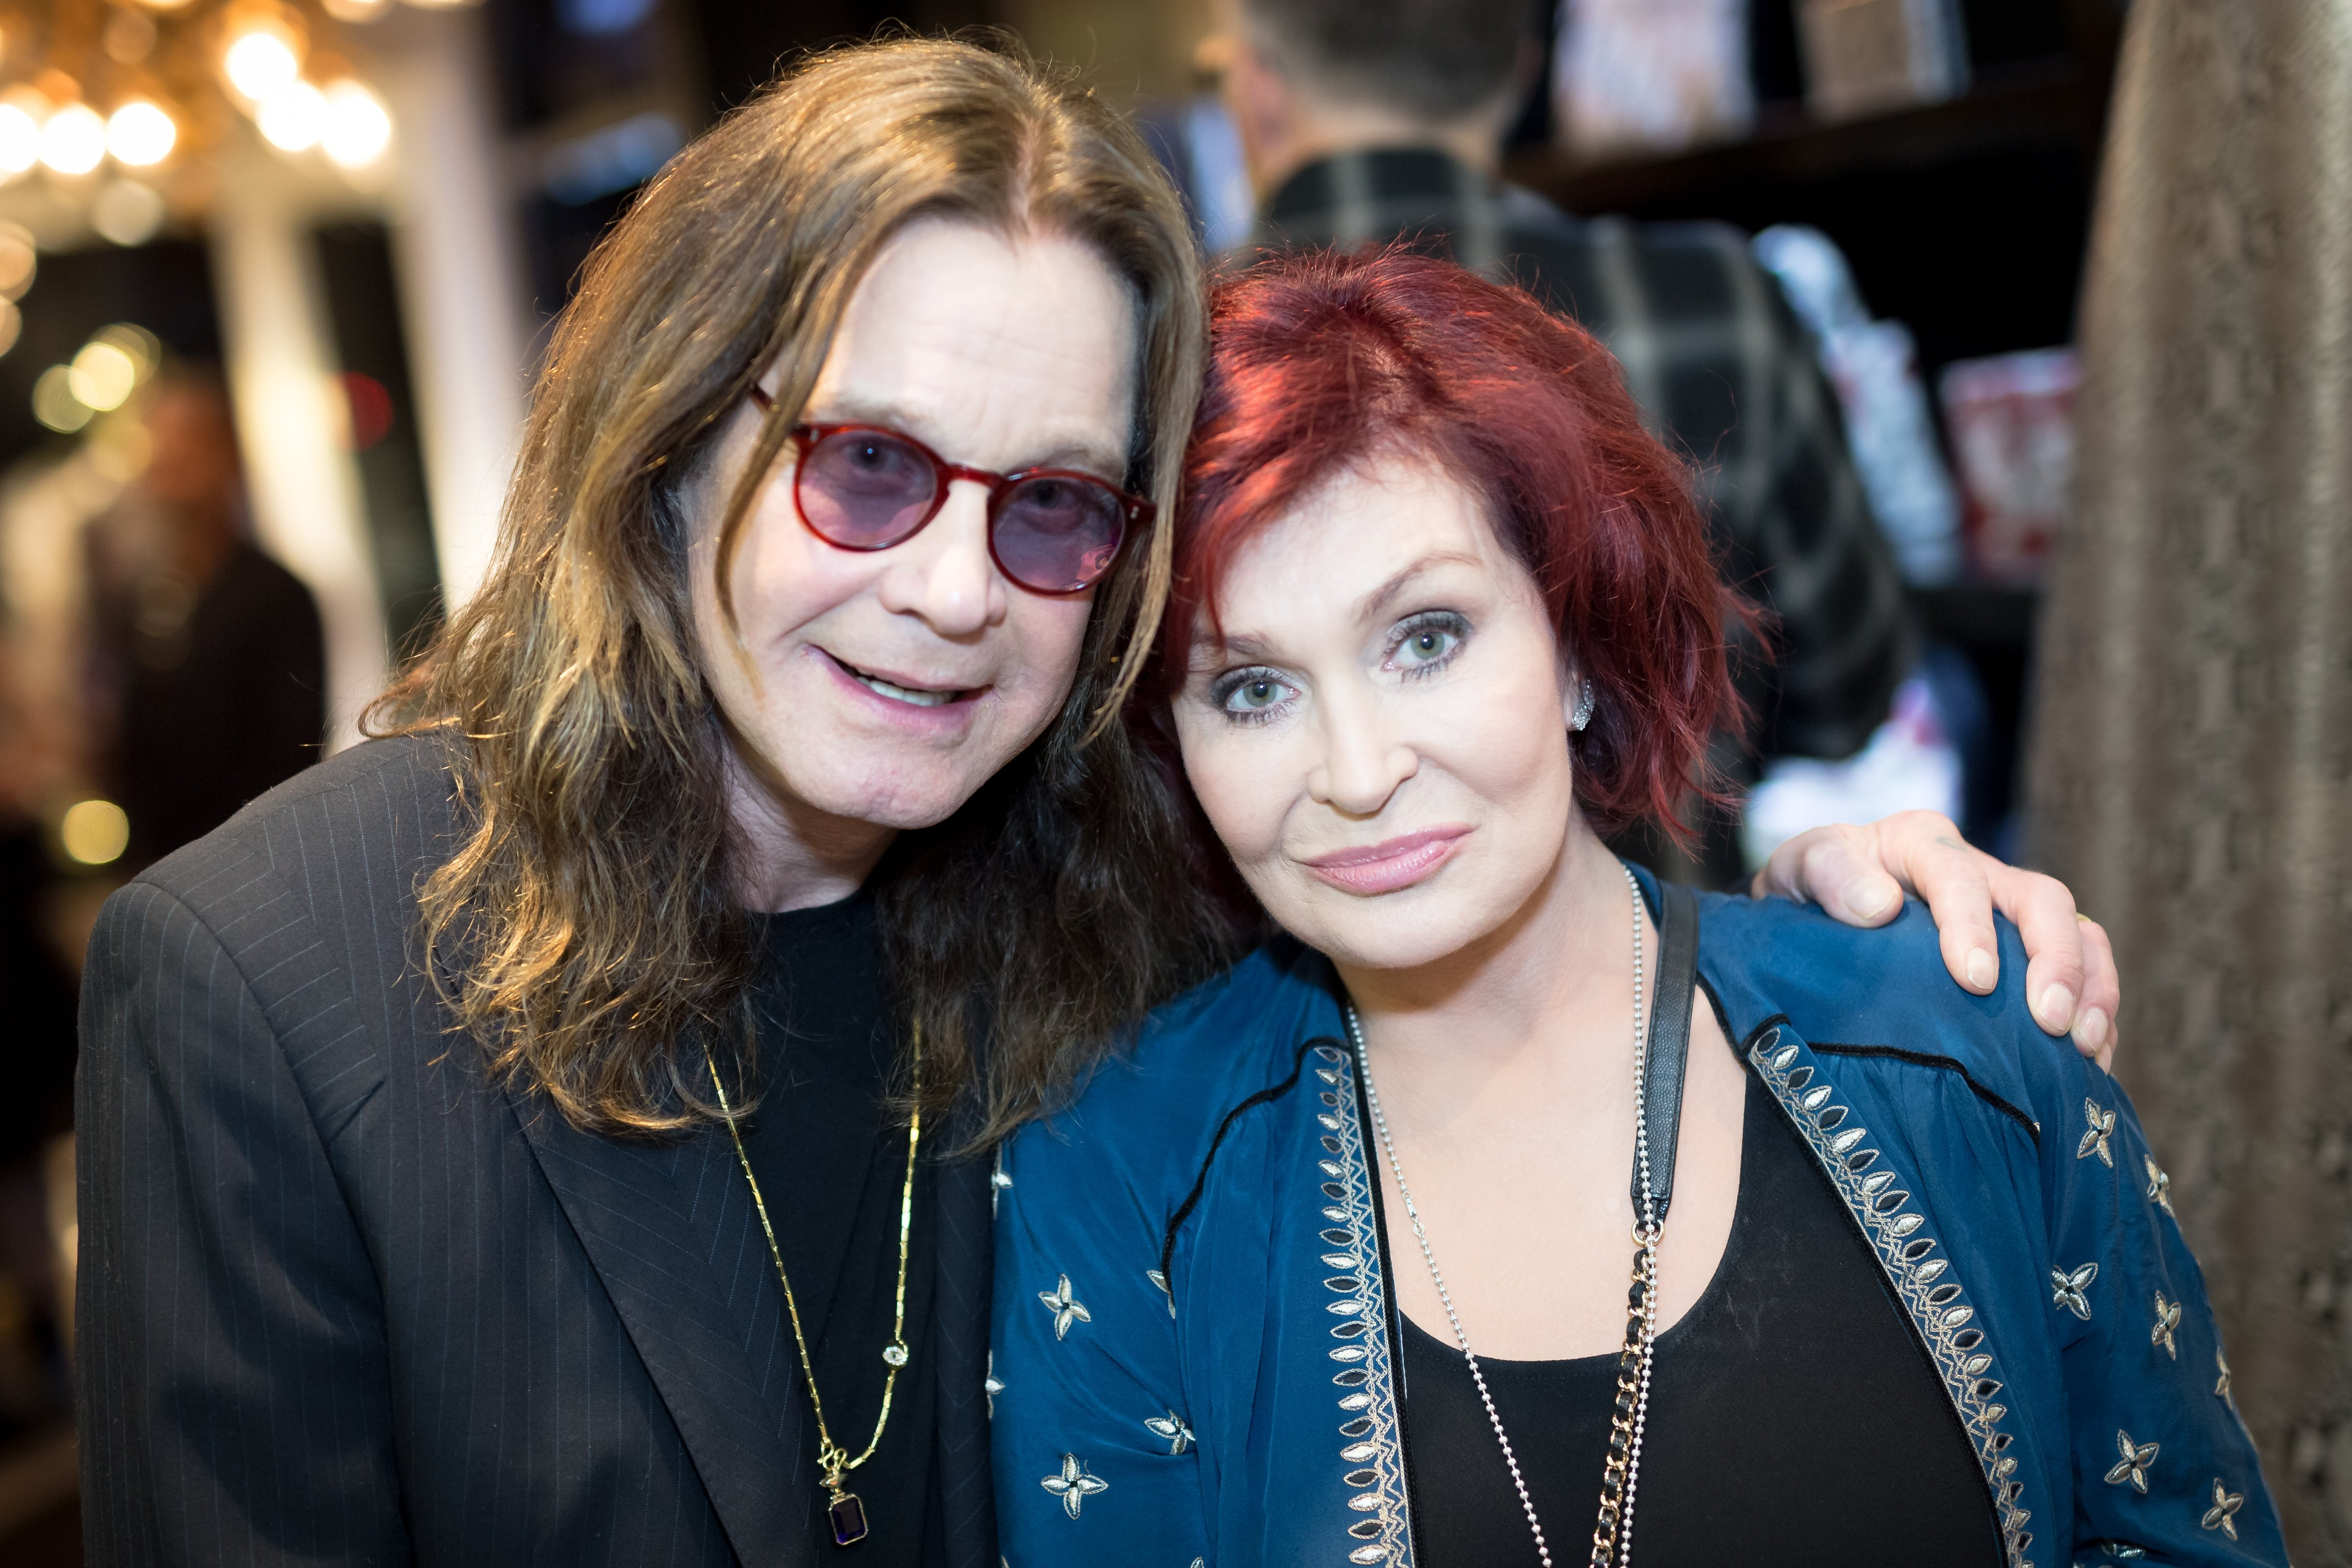 Ozzy and Sharon Osbourne at the Billy Morrison - Aude Somnia Solo Exhibition at Elisabeth Weinstock on September 28, 2017 in Los Angeles, California | Photo: Getty Images